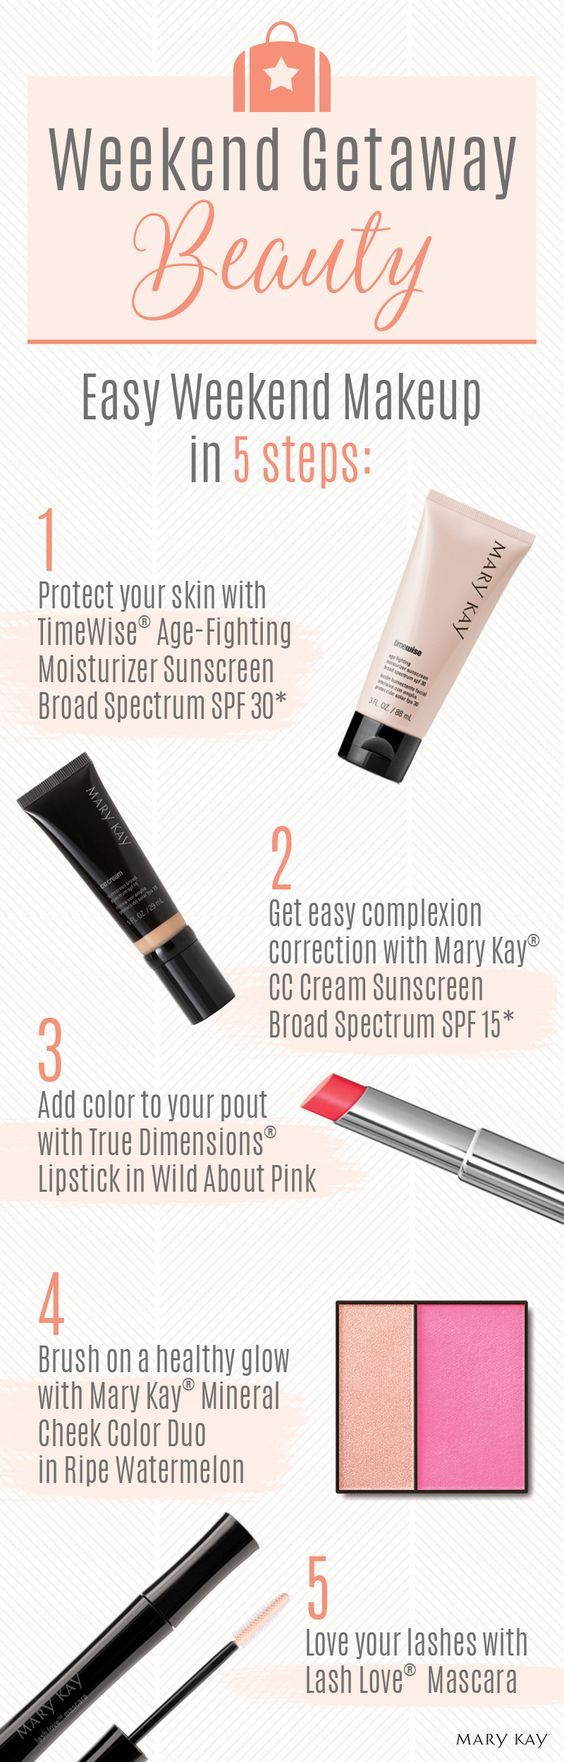 Ready to pack your makeup bag for a weekend getaway? From mascara to lipstick to sunscreen, these 5 travel must-haves will have you feeling gorgeous while on-the-go! | Mary Kay